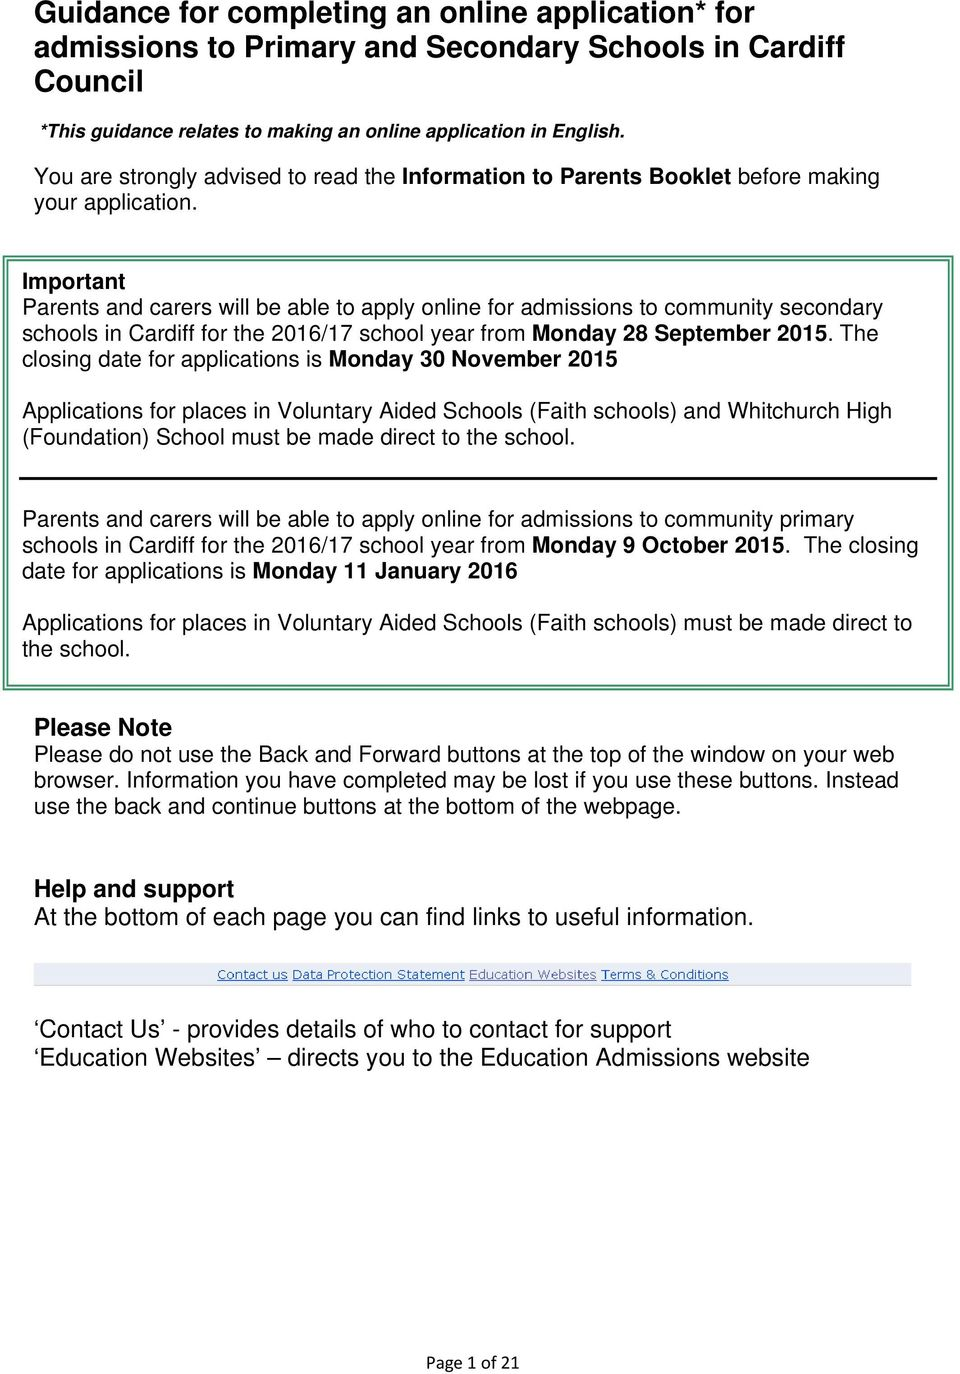 Important Parents and carers will be able to apply online for admissions to community secondary schools in Cardiff for the 2016/17 school year from Monday 28 September 2015.